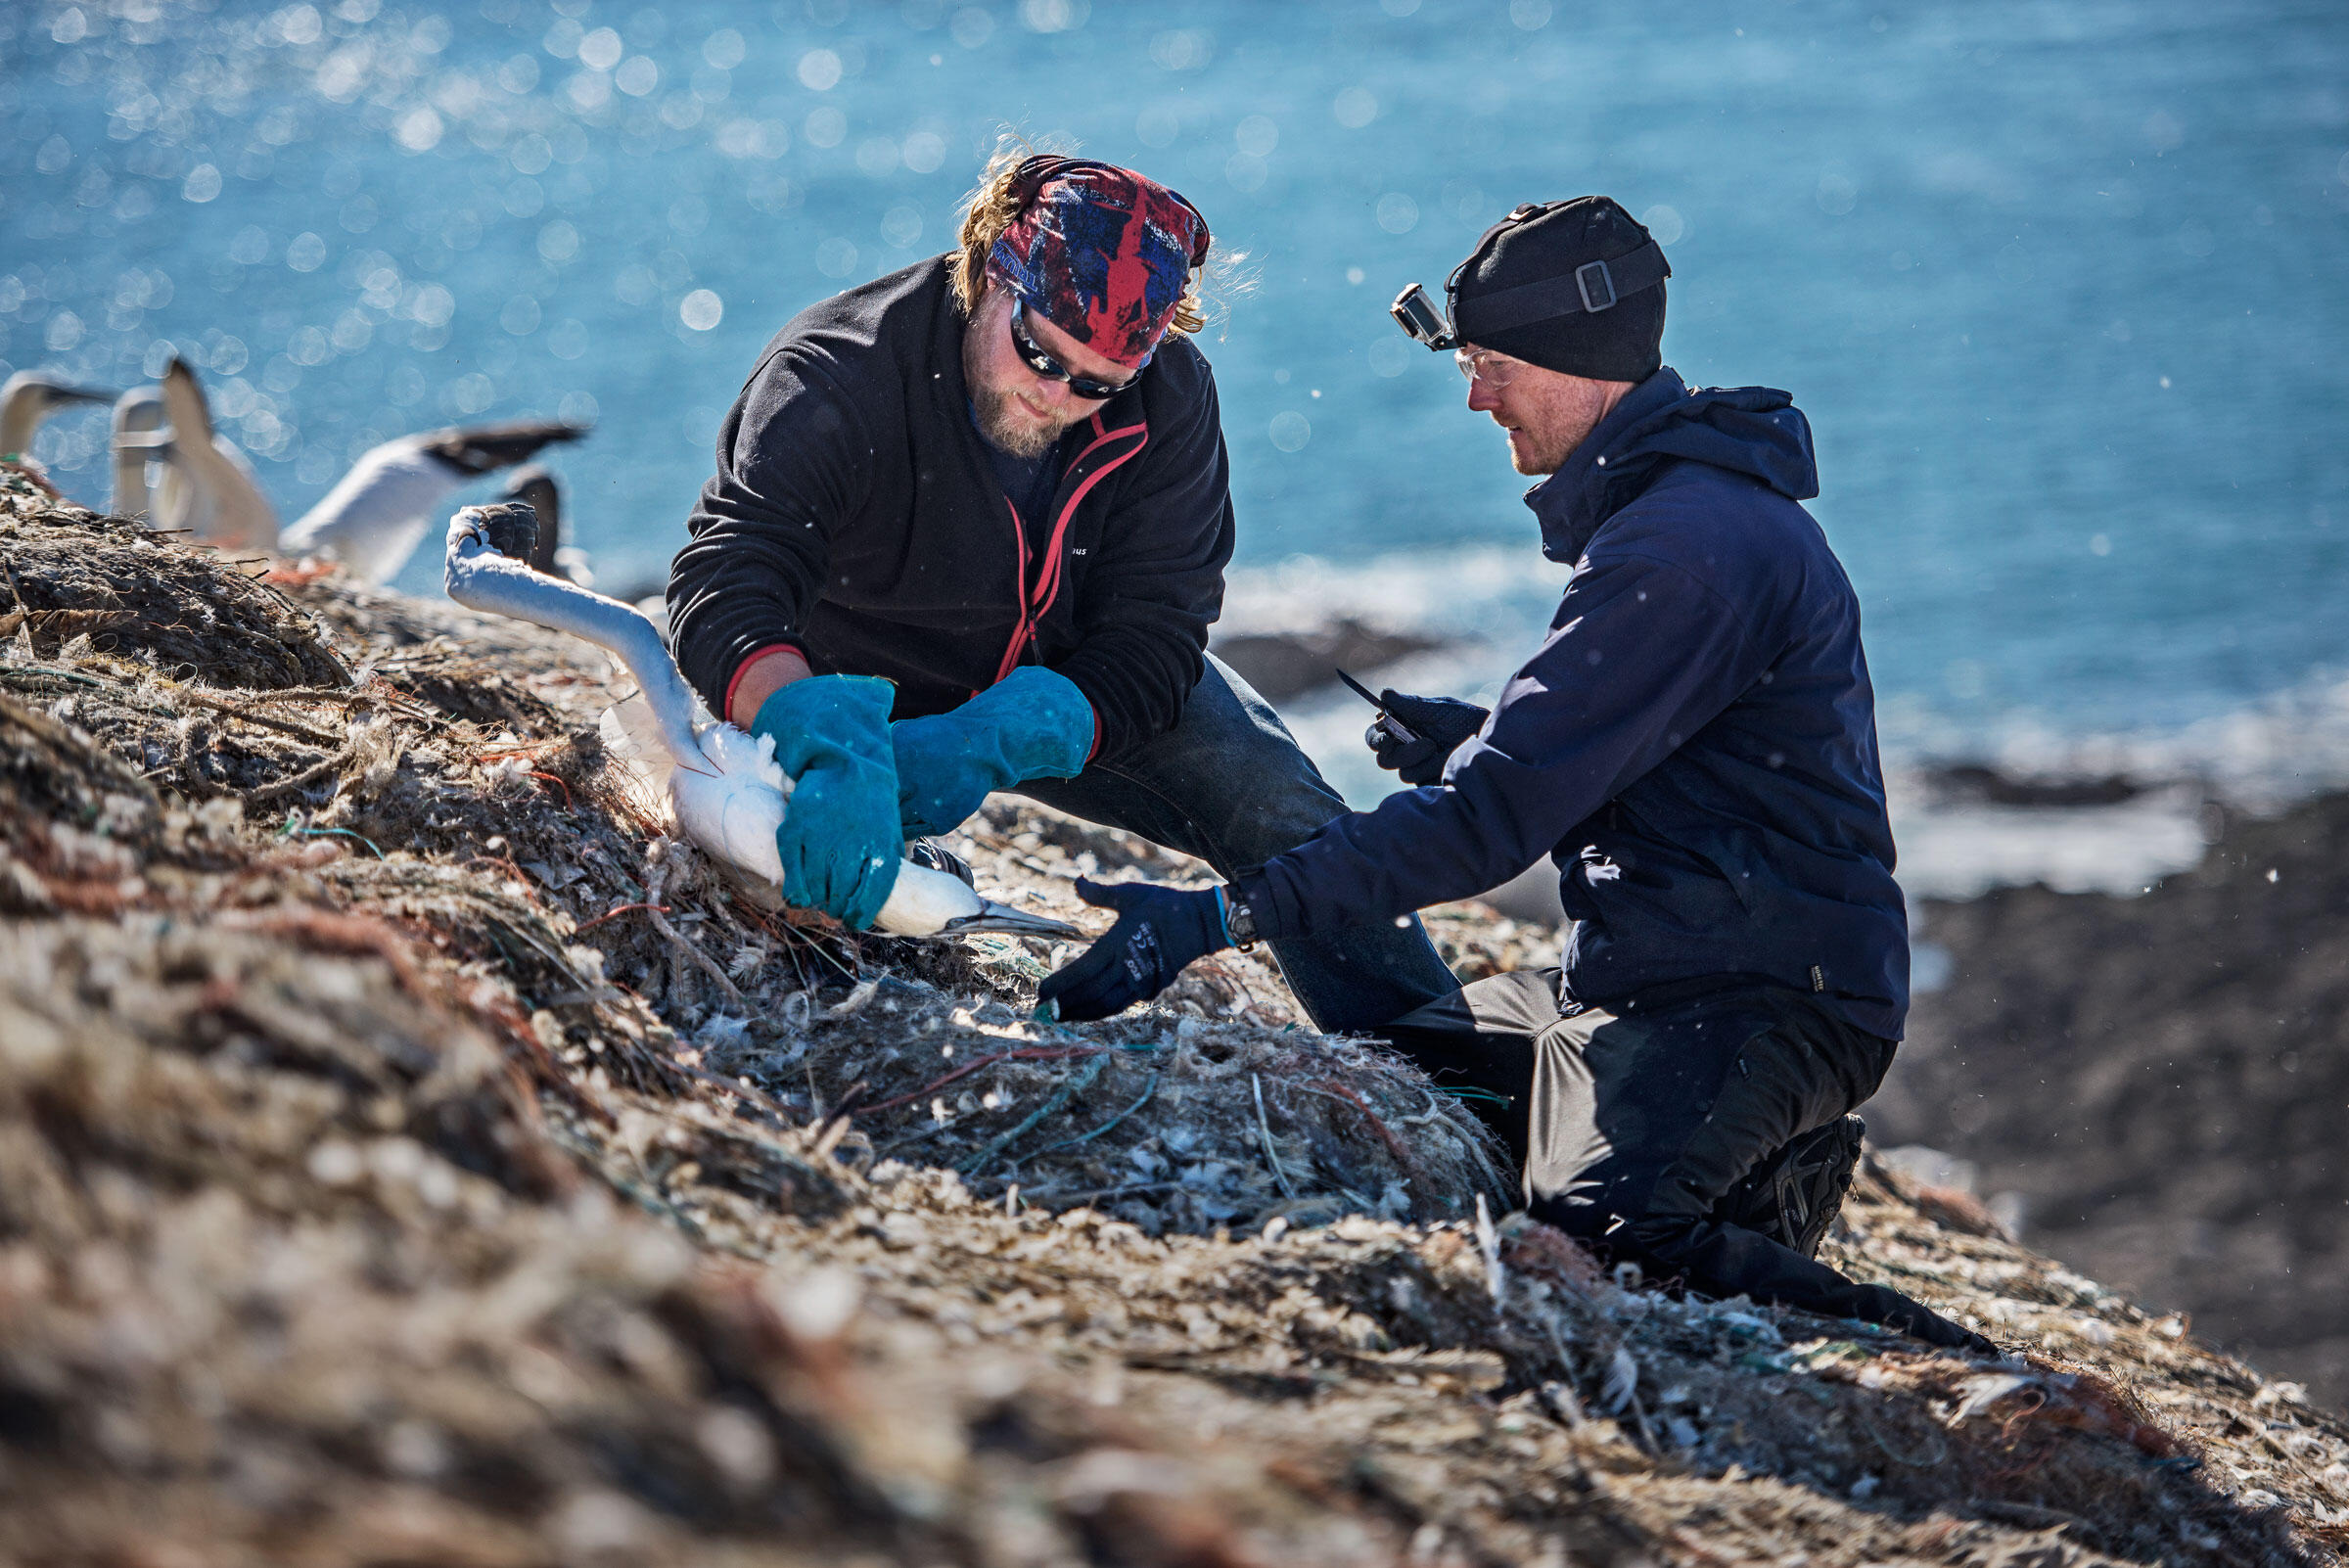 Volunteer Morgan Wicks (left), a skipper with Thousand Island Expeditions who ferries tourists around Grassholm, holds a bird while RSPB warden Greg Morgan frees it. Sam Hobson